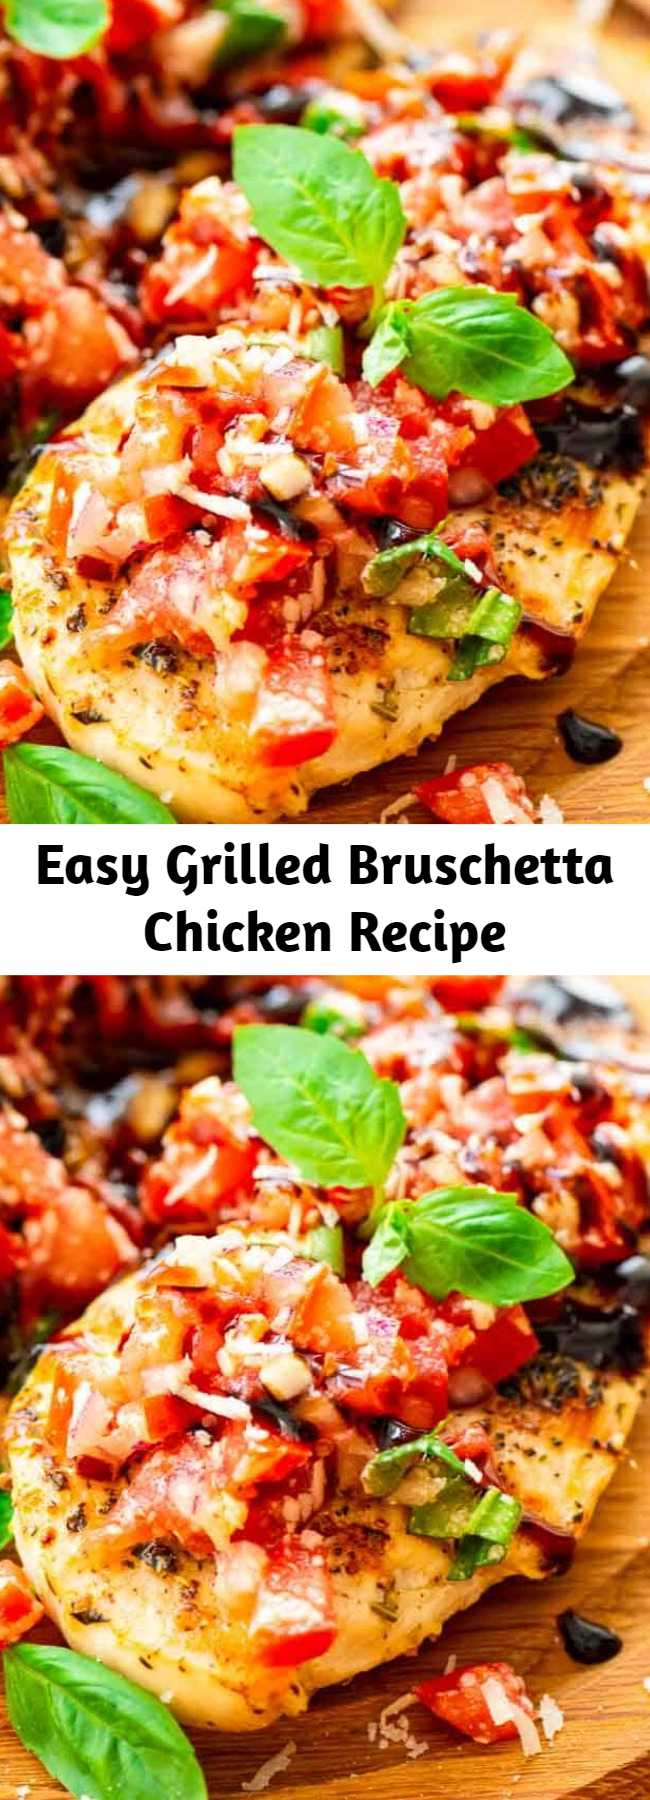 Easy Grilled Bruschetta Chicken Recipe - Quick and easy recipe made on the grill or in a grill pan! Tender, juicy chicken topped with bruschetta and a balsamic glaze! #bruschetta #recipe